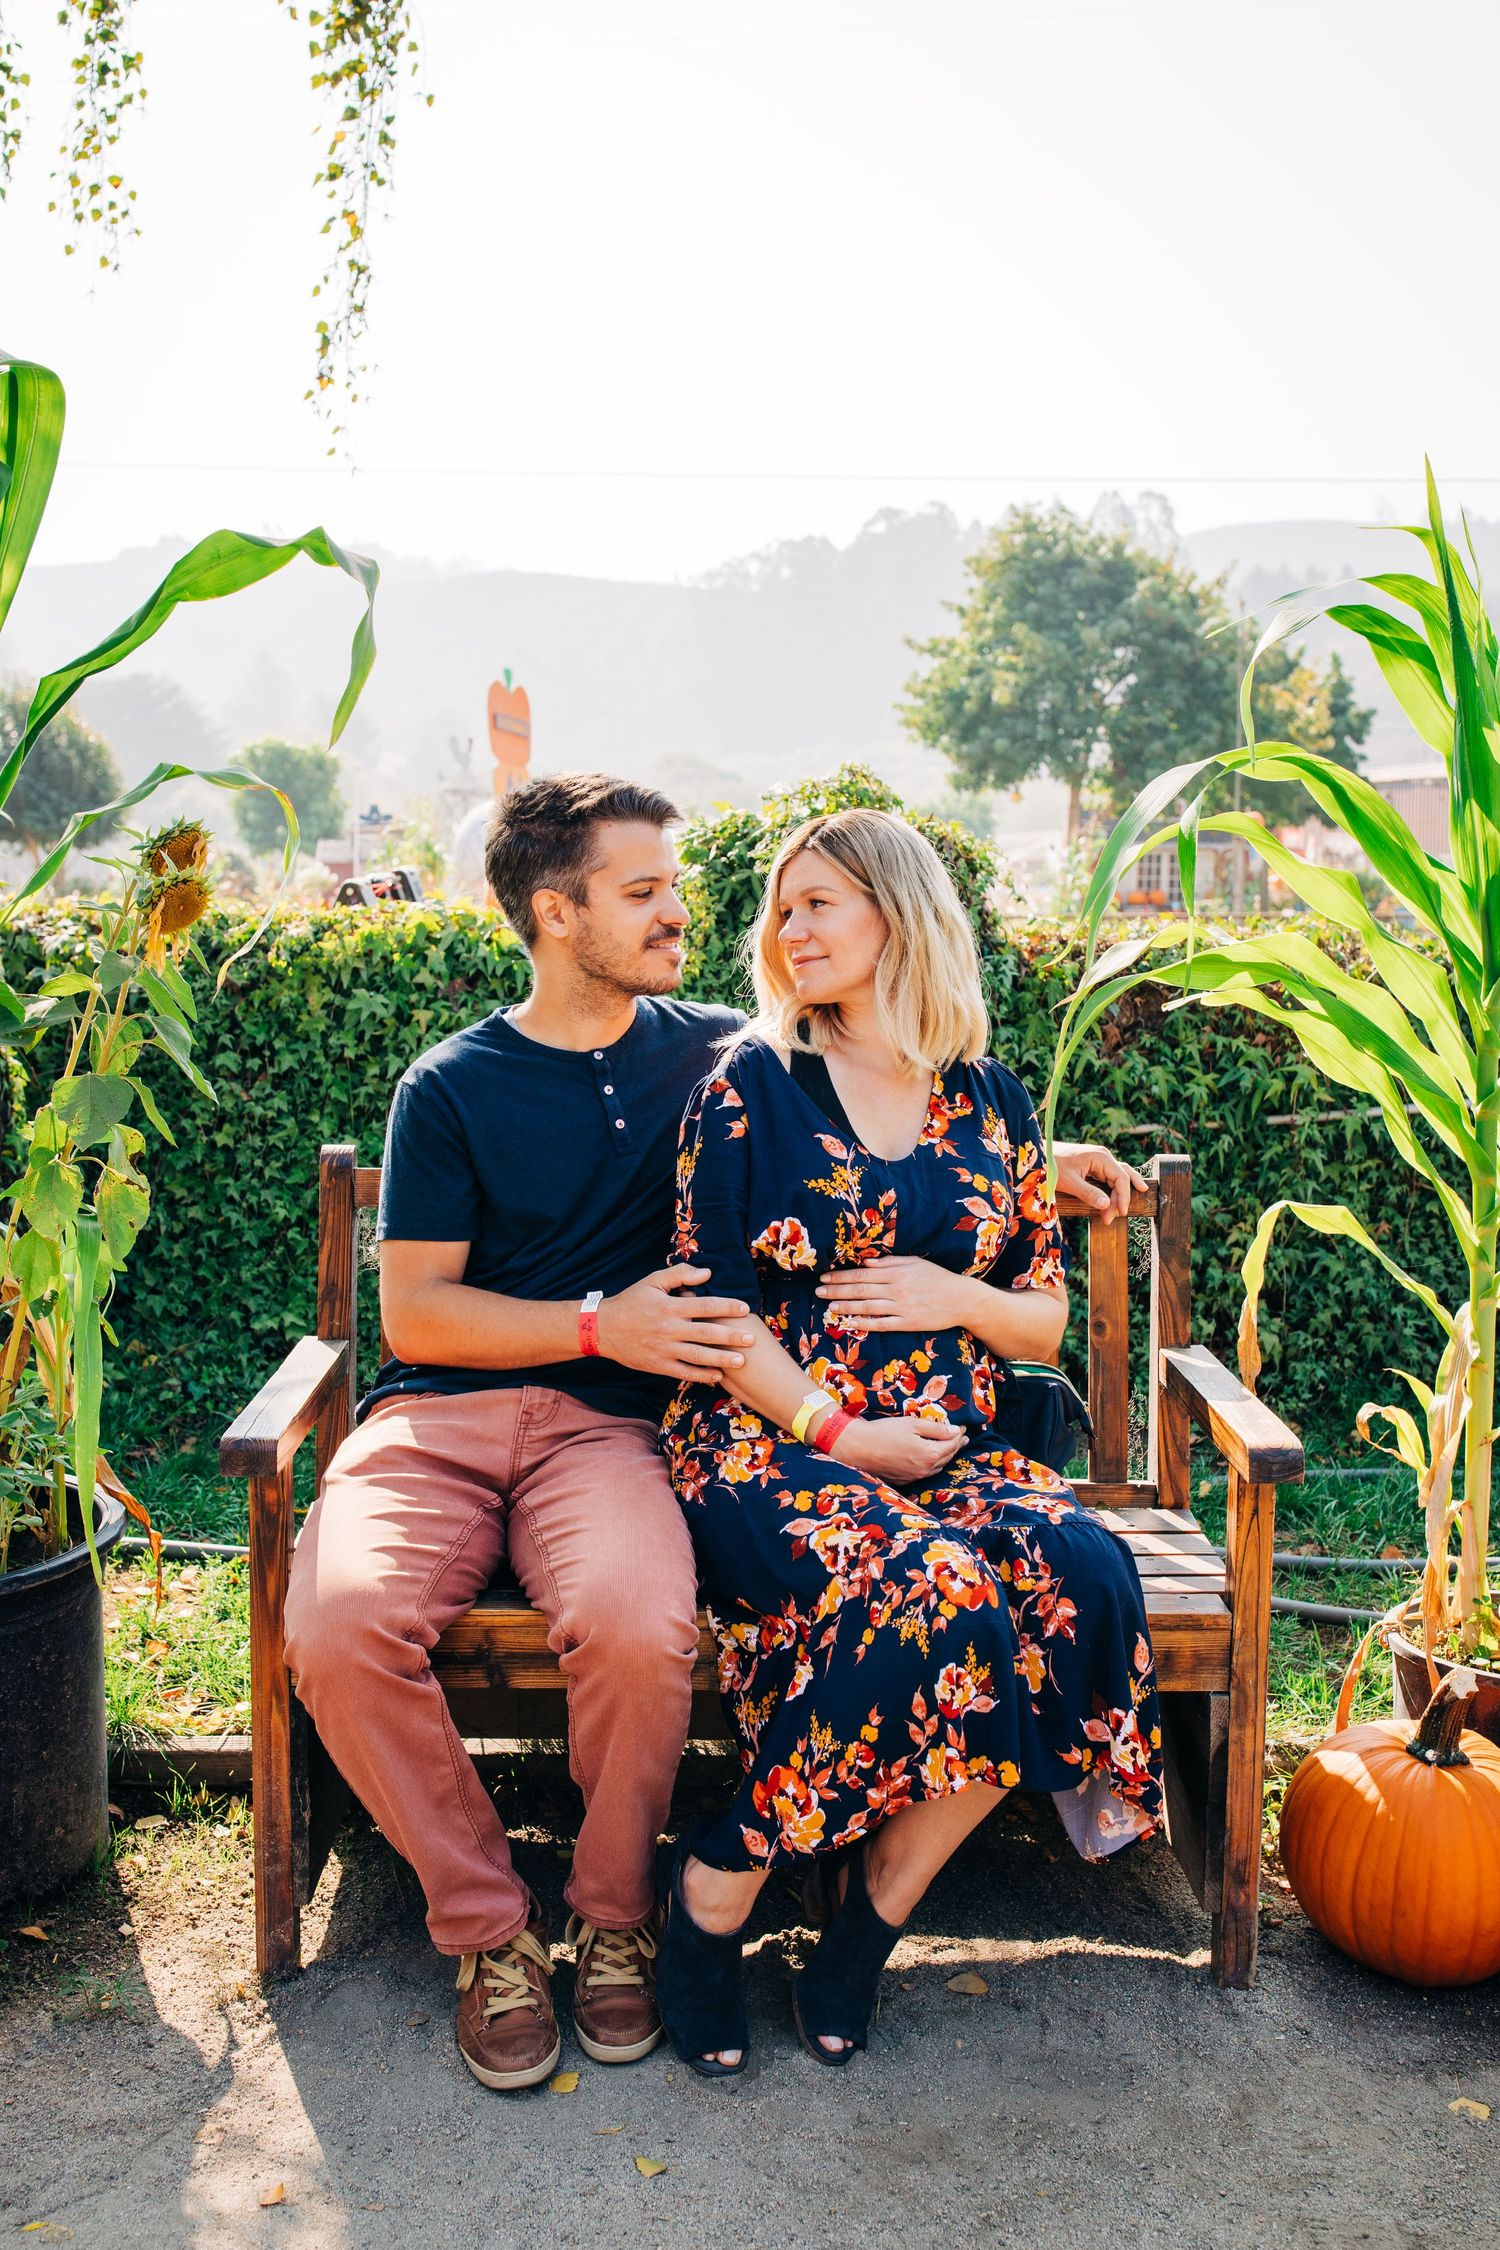 A camera-shy expecting couple sits together in a pumpkin patch in northern California.